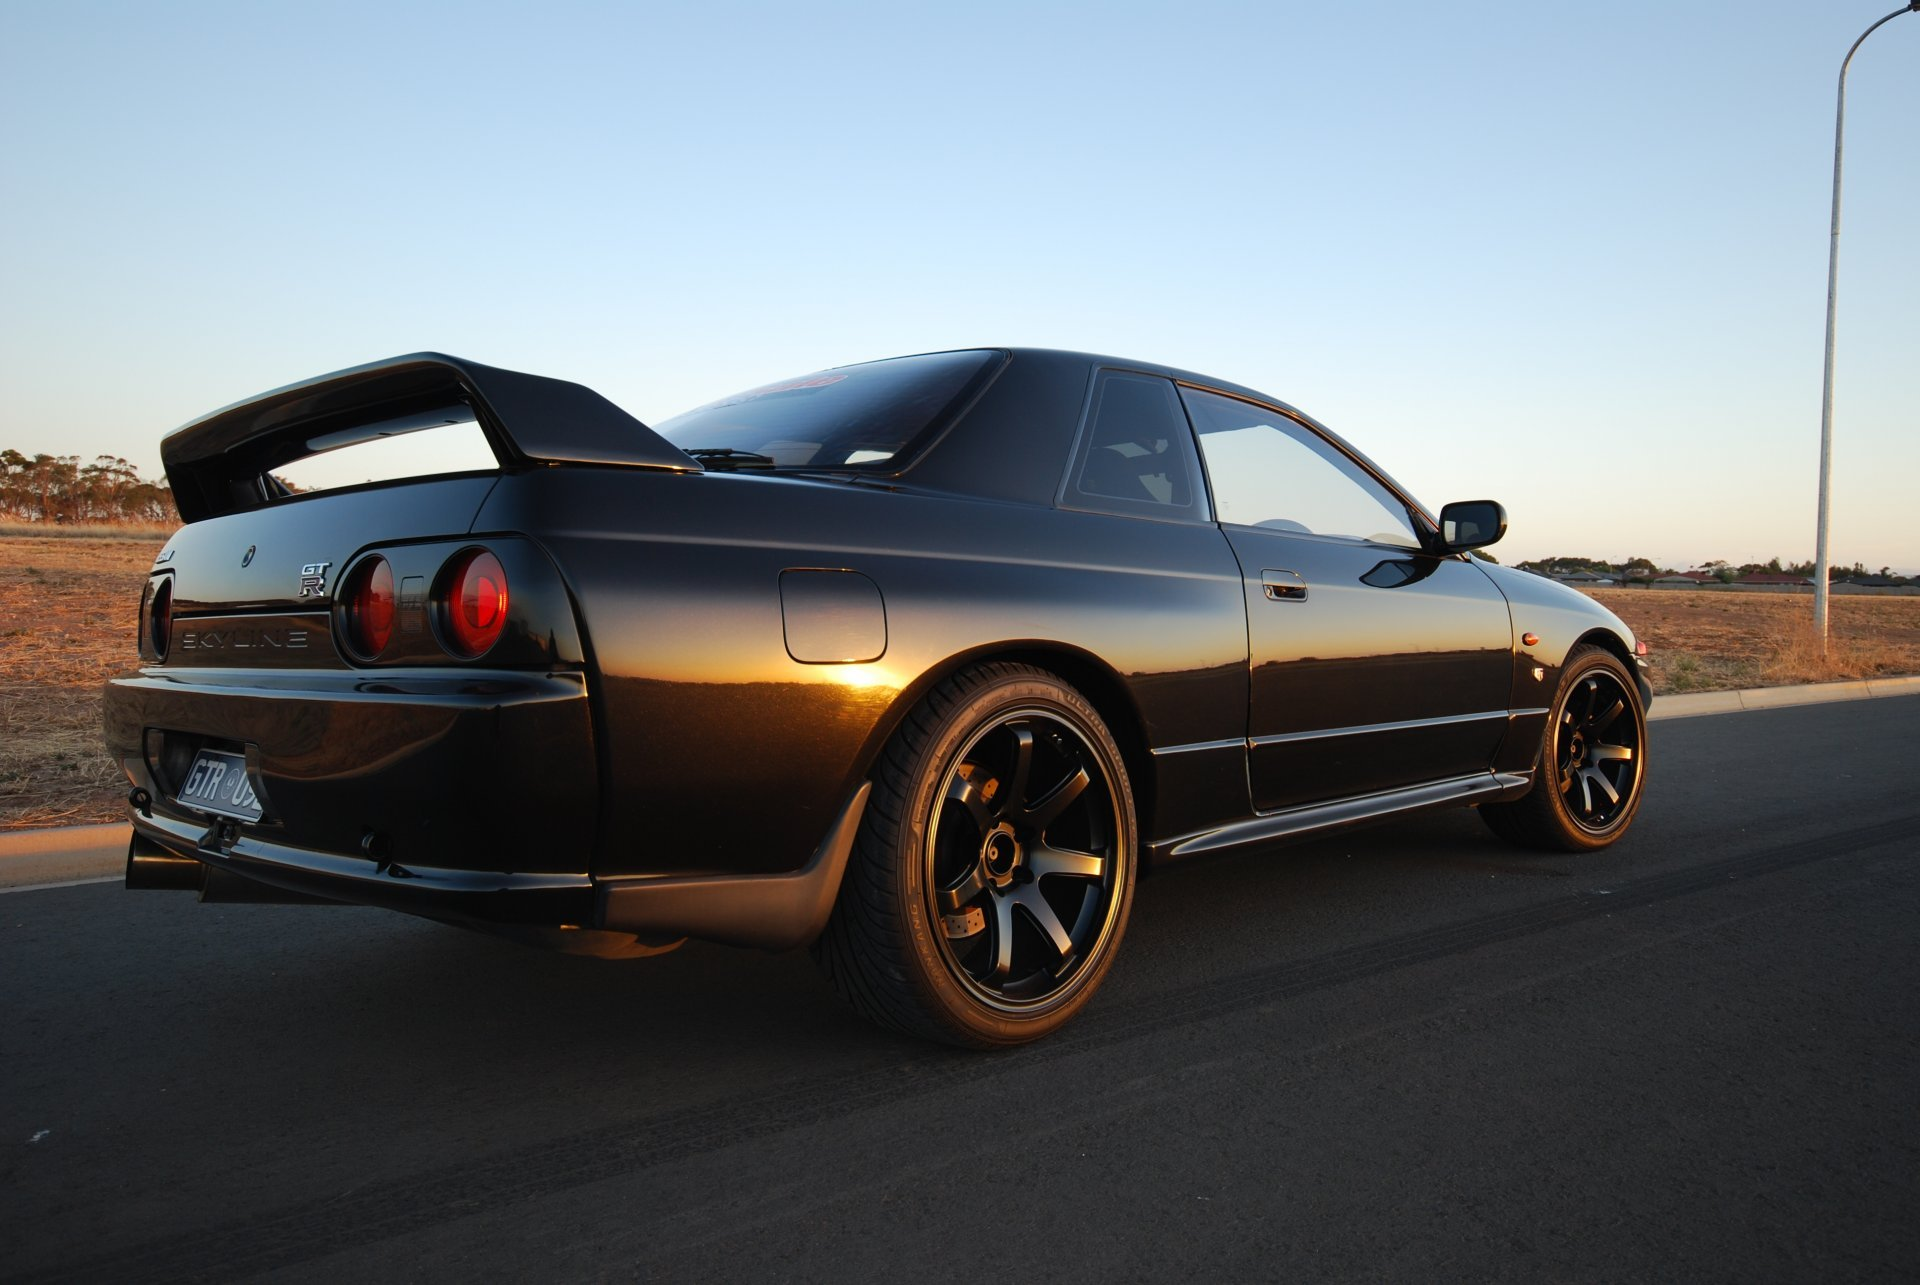 Nissan Skyline Gt R R32 Coupe Black Japan Wallpapers Drift 1920x1285